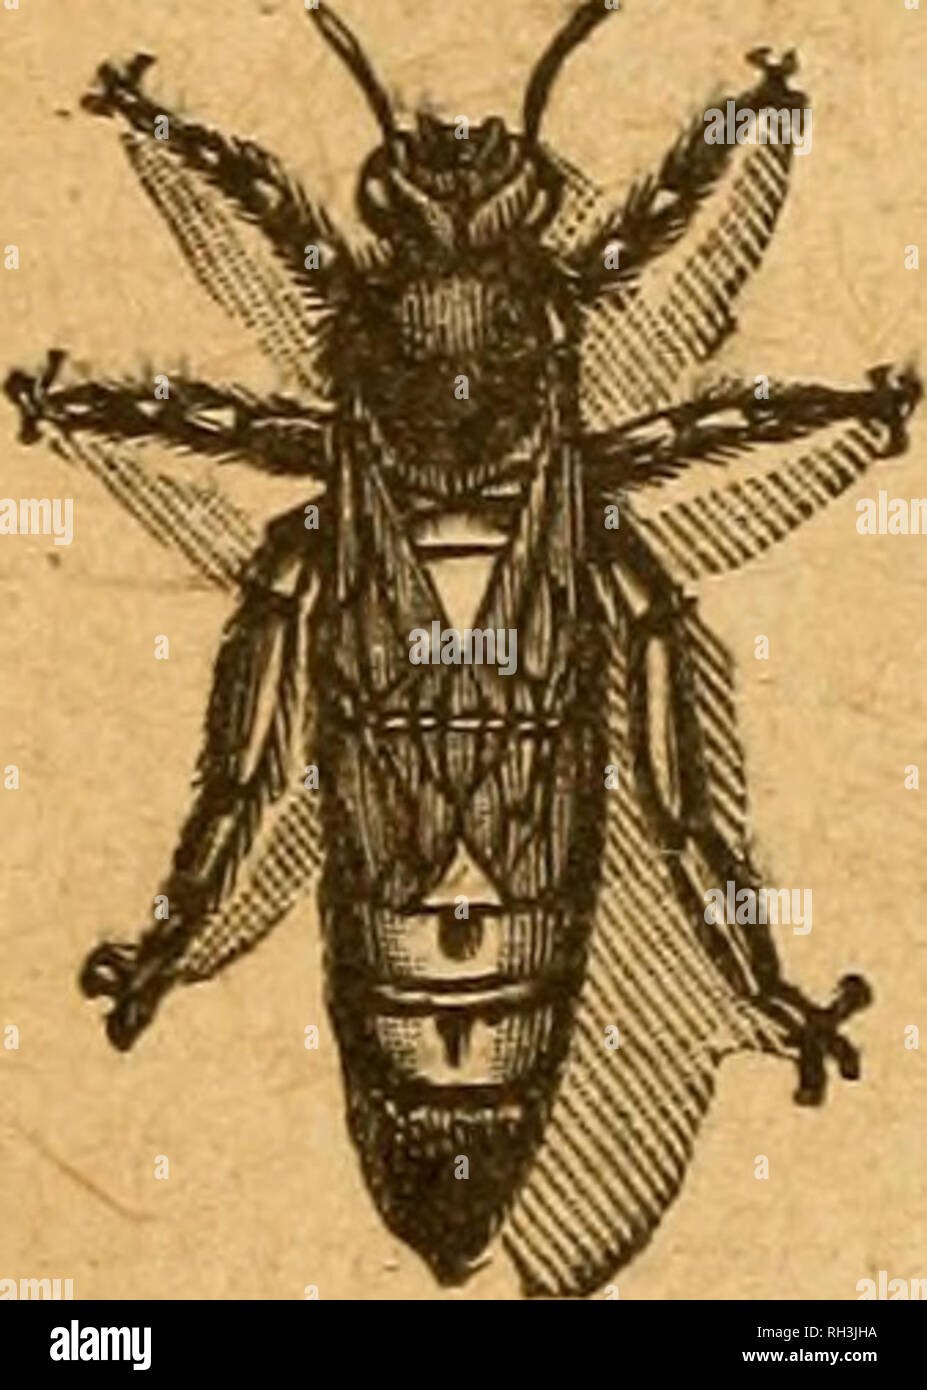 """. British bee journal & bee-keepers adviser. Bees. 360 THE BRITISH B^ JOlTRyAL. July 22, 1920. HAVB tOtI EBAI> """"THB BM WORLD""""? If not, irhj noit Eveiry aumlMr in itself i» « uMful lit«rar7 work for pr«etic« and refM»ne«. Bp«cim«B eop7 free.—Offic«a: THB A.PIS OLUB, Port HIU HooM, Benson, Oxeo. ITALIAN QUEENS Direct from Italy. Address: Signor Gaetano Plana, Castel San Pietro. near Bologna, Italy.. All Queens are reared by the most up-to-date and scientific methods. Mr. W. Herrod-Hempsall has personally inspected the apiary and methods employed, with which he is perfectly satis - Stock Image"""